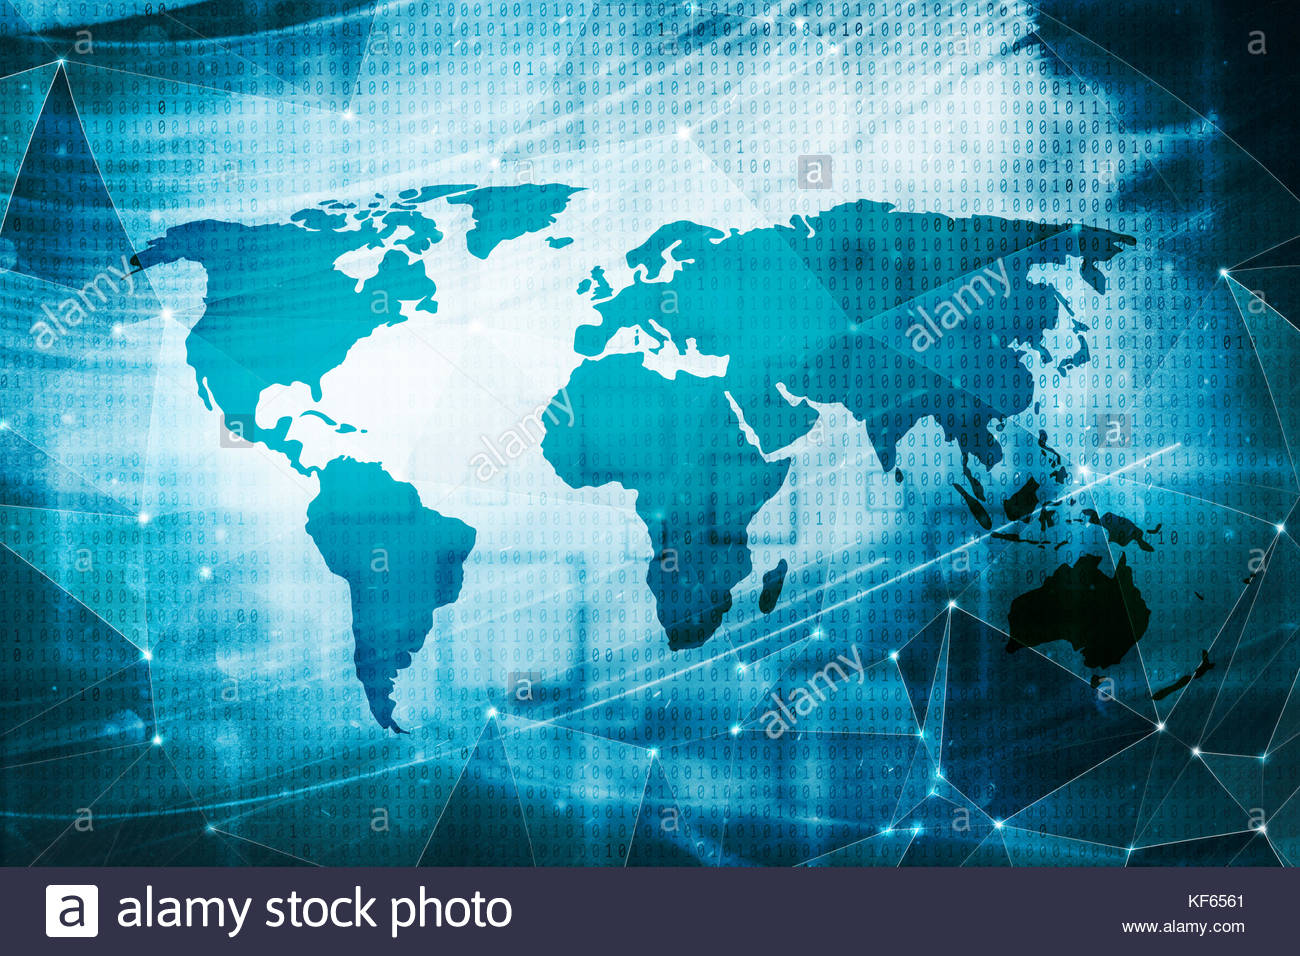 Artistic World Map On Abstract Triangle Background With Binary - Artistic world map